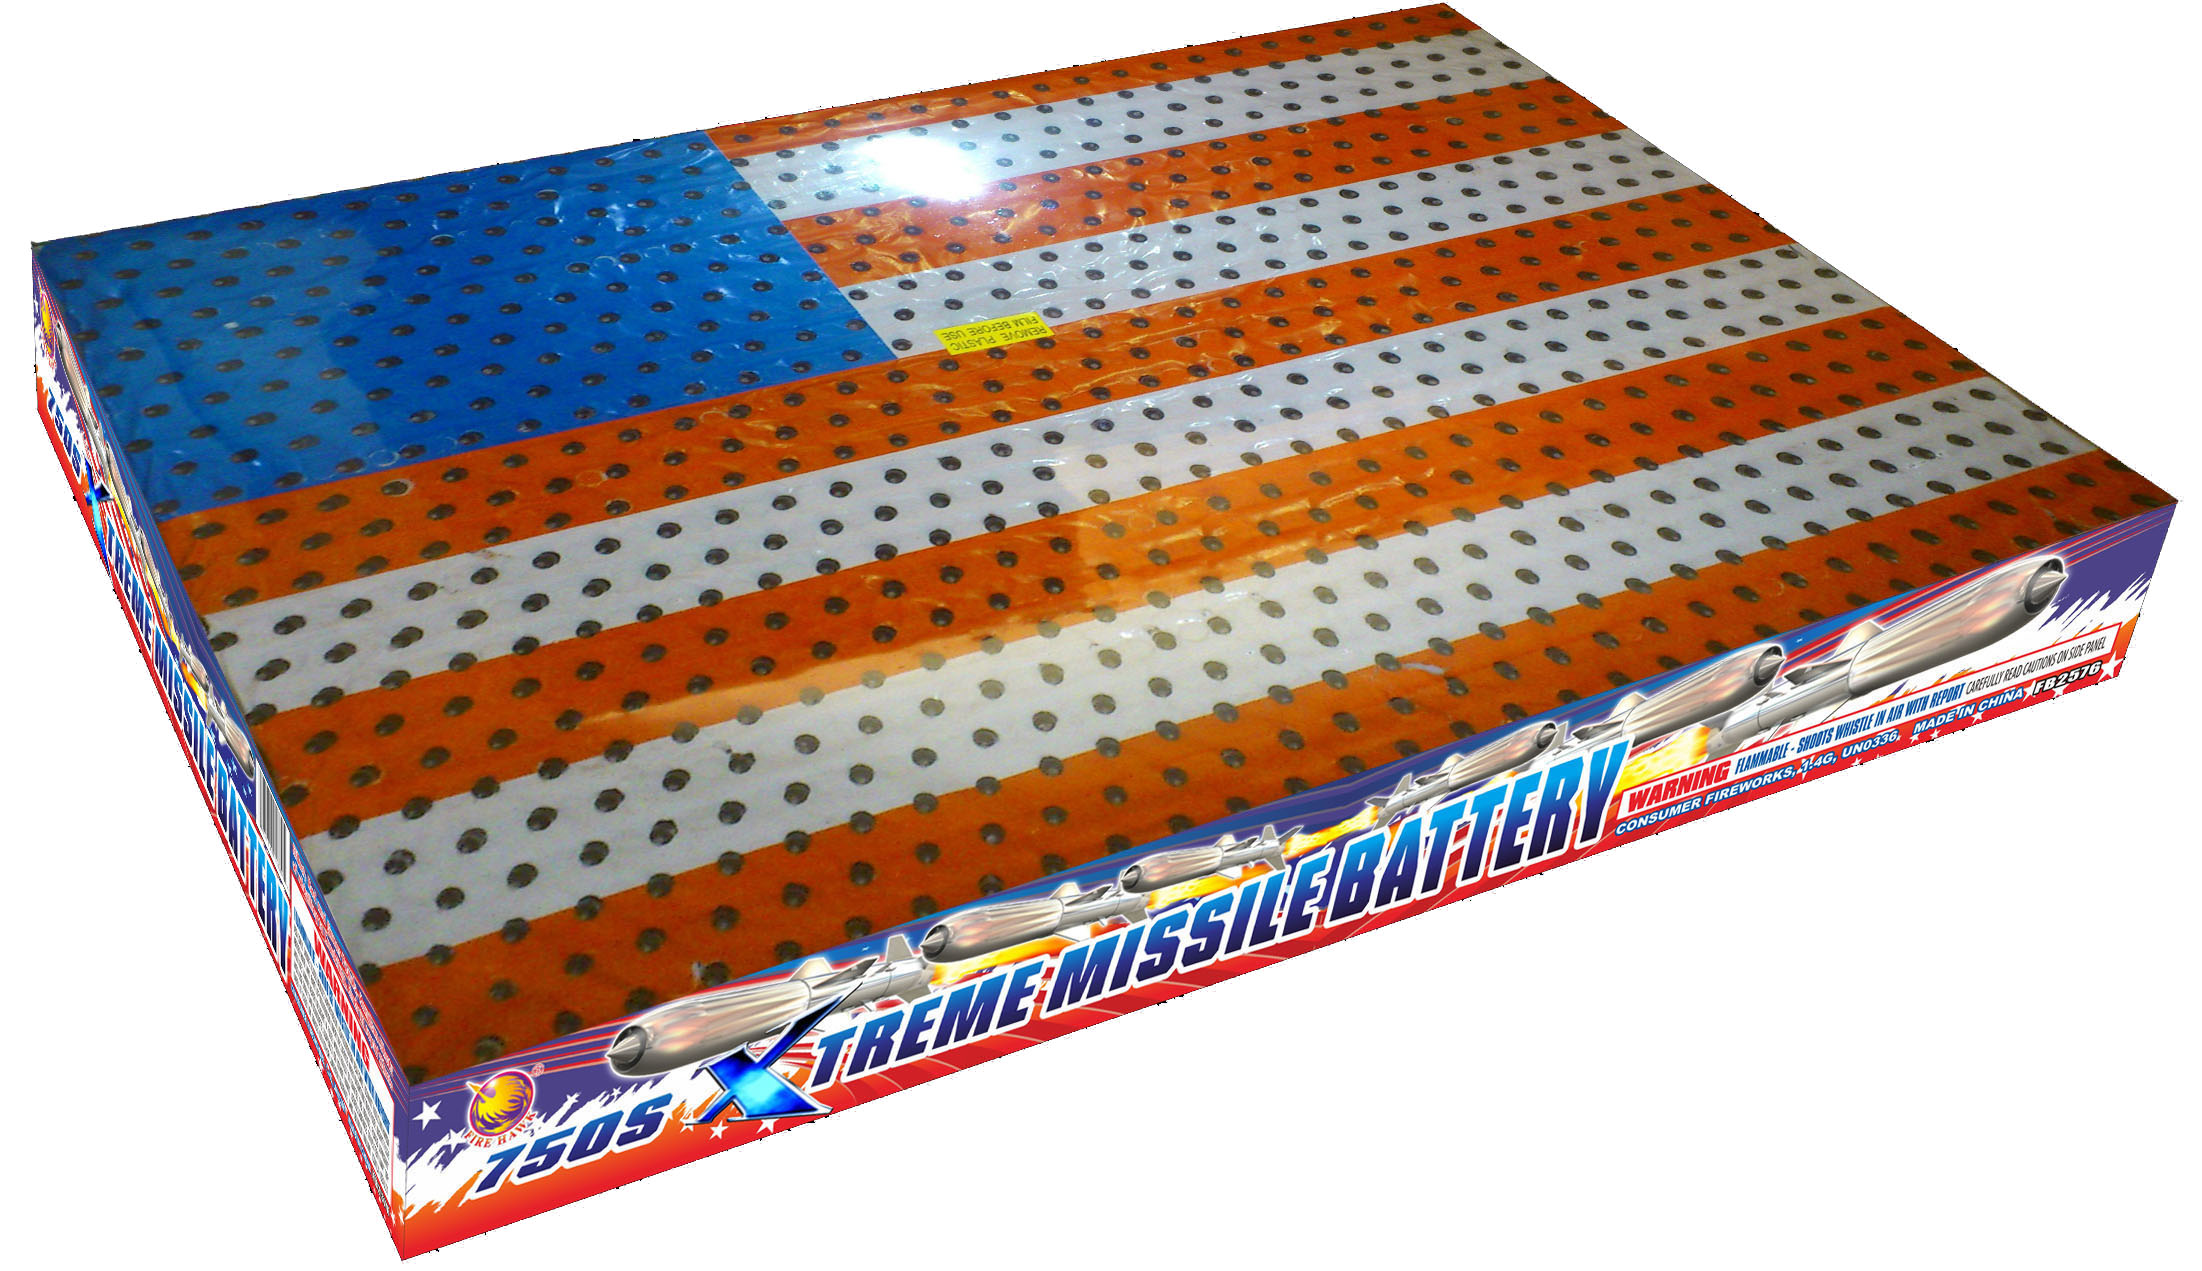 FB2576 750S Xtreme Missile Battery